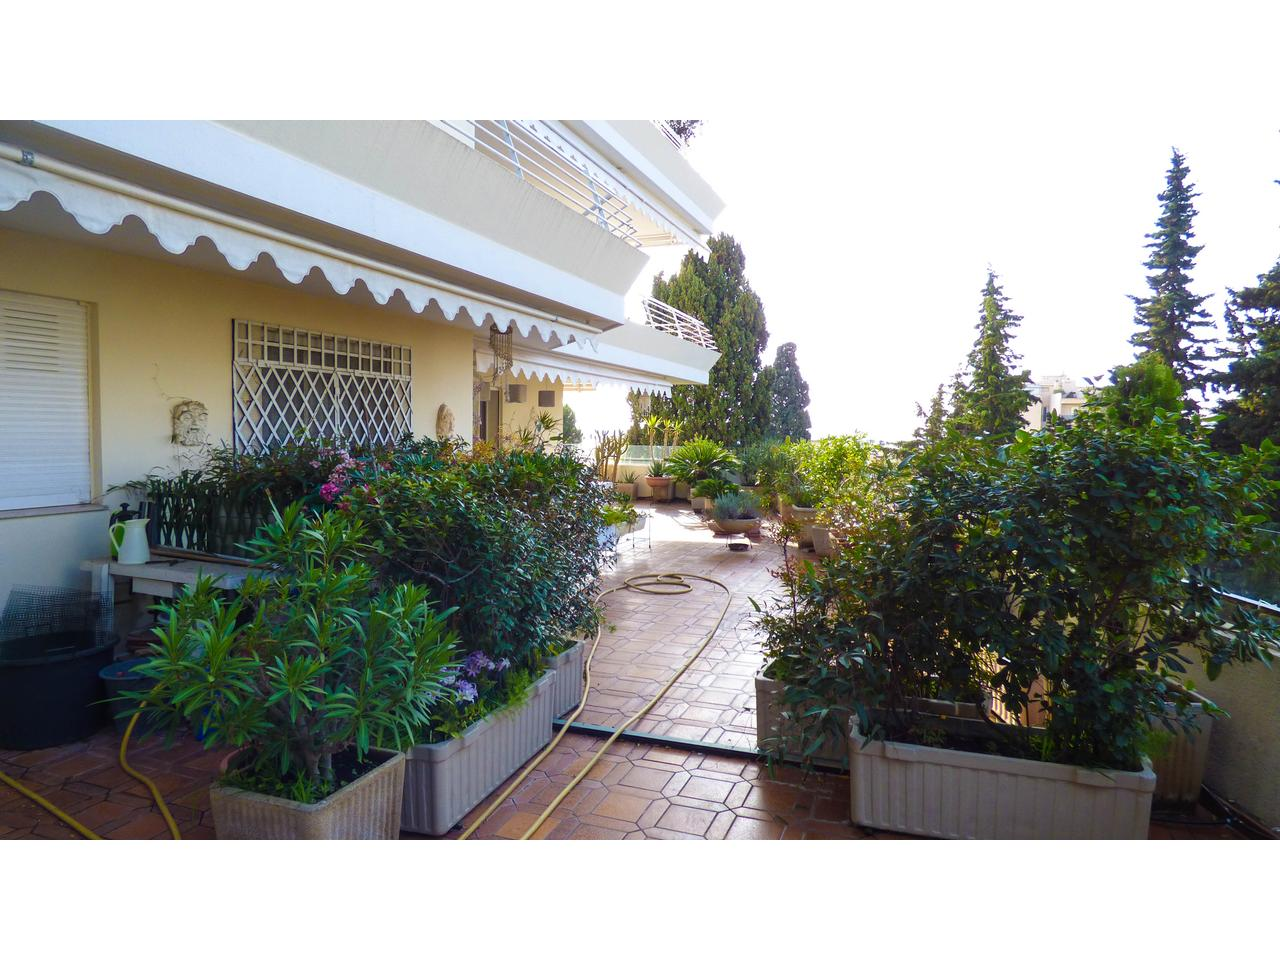 Immobilier nice vue mer appartement cannes 4 pieces appartement villa vue mer - Aparte immobilier nice ...